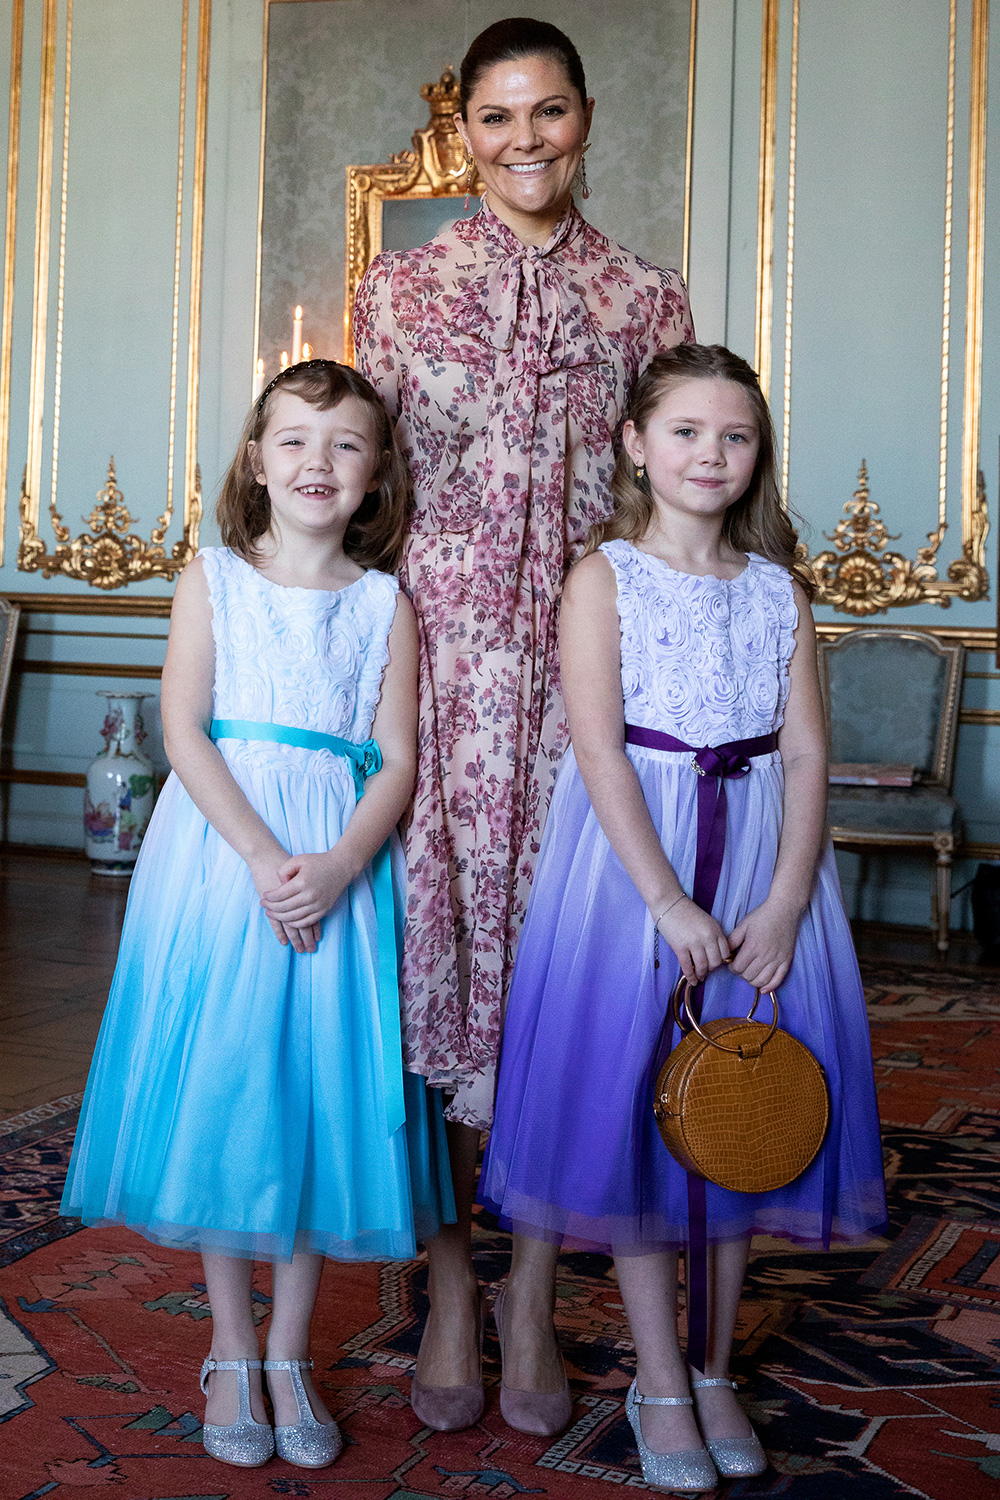 Crown Princess Victoria welcomes Emilia to the Royal Palace